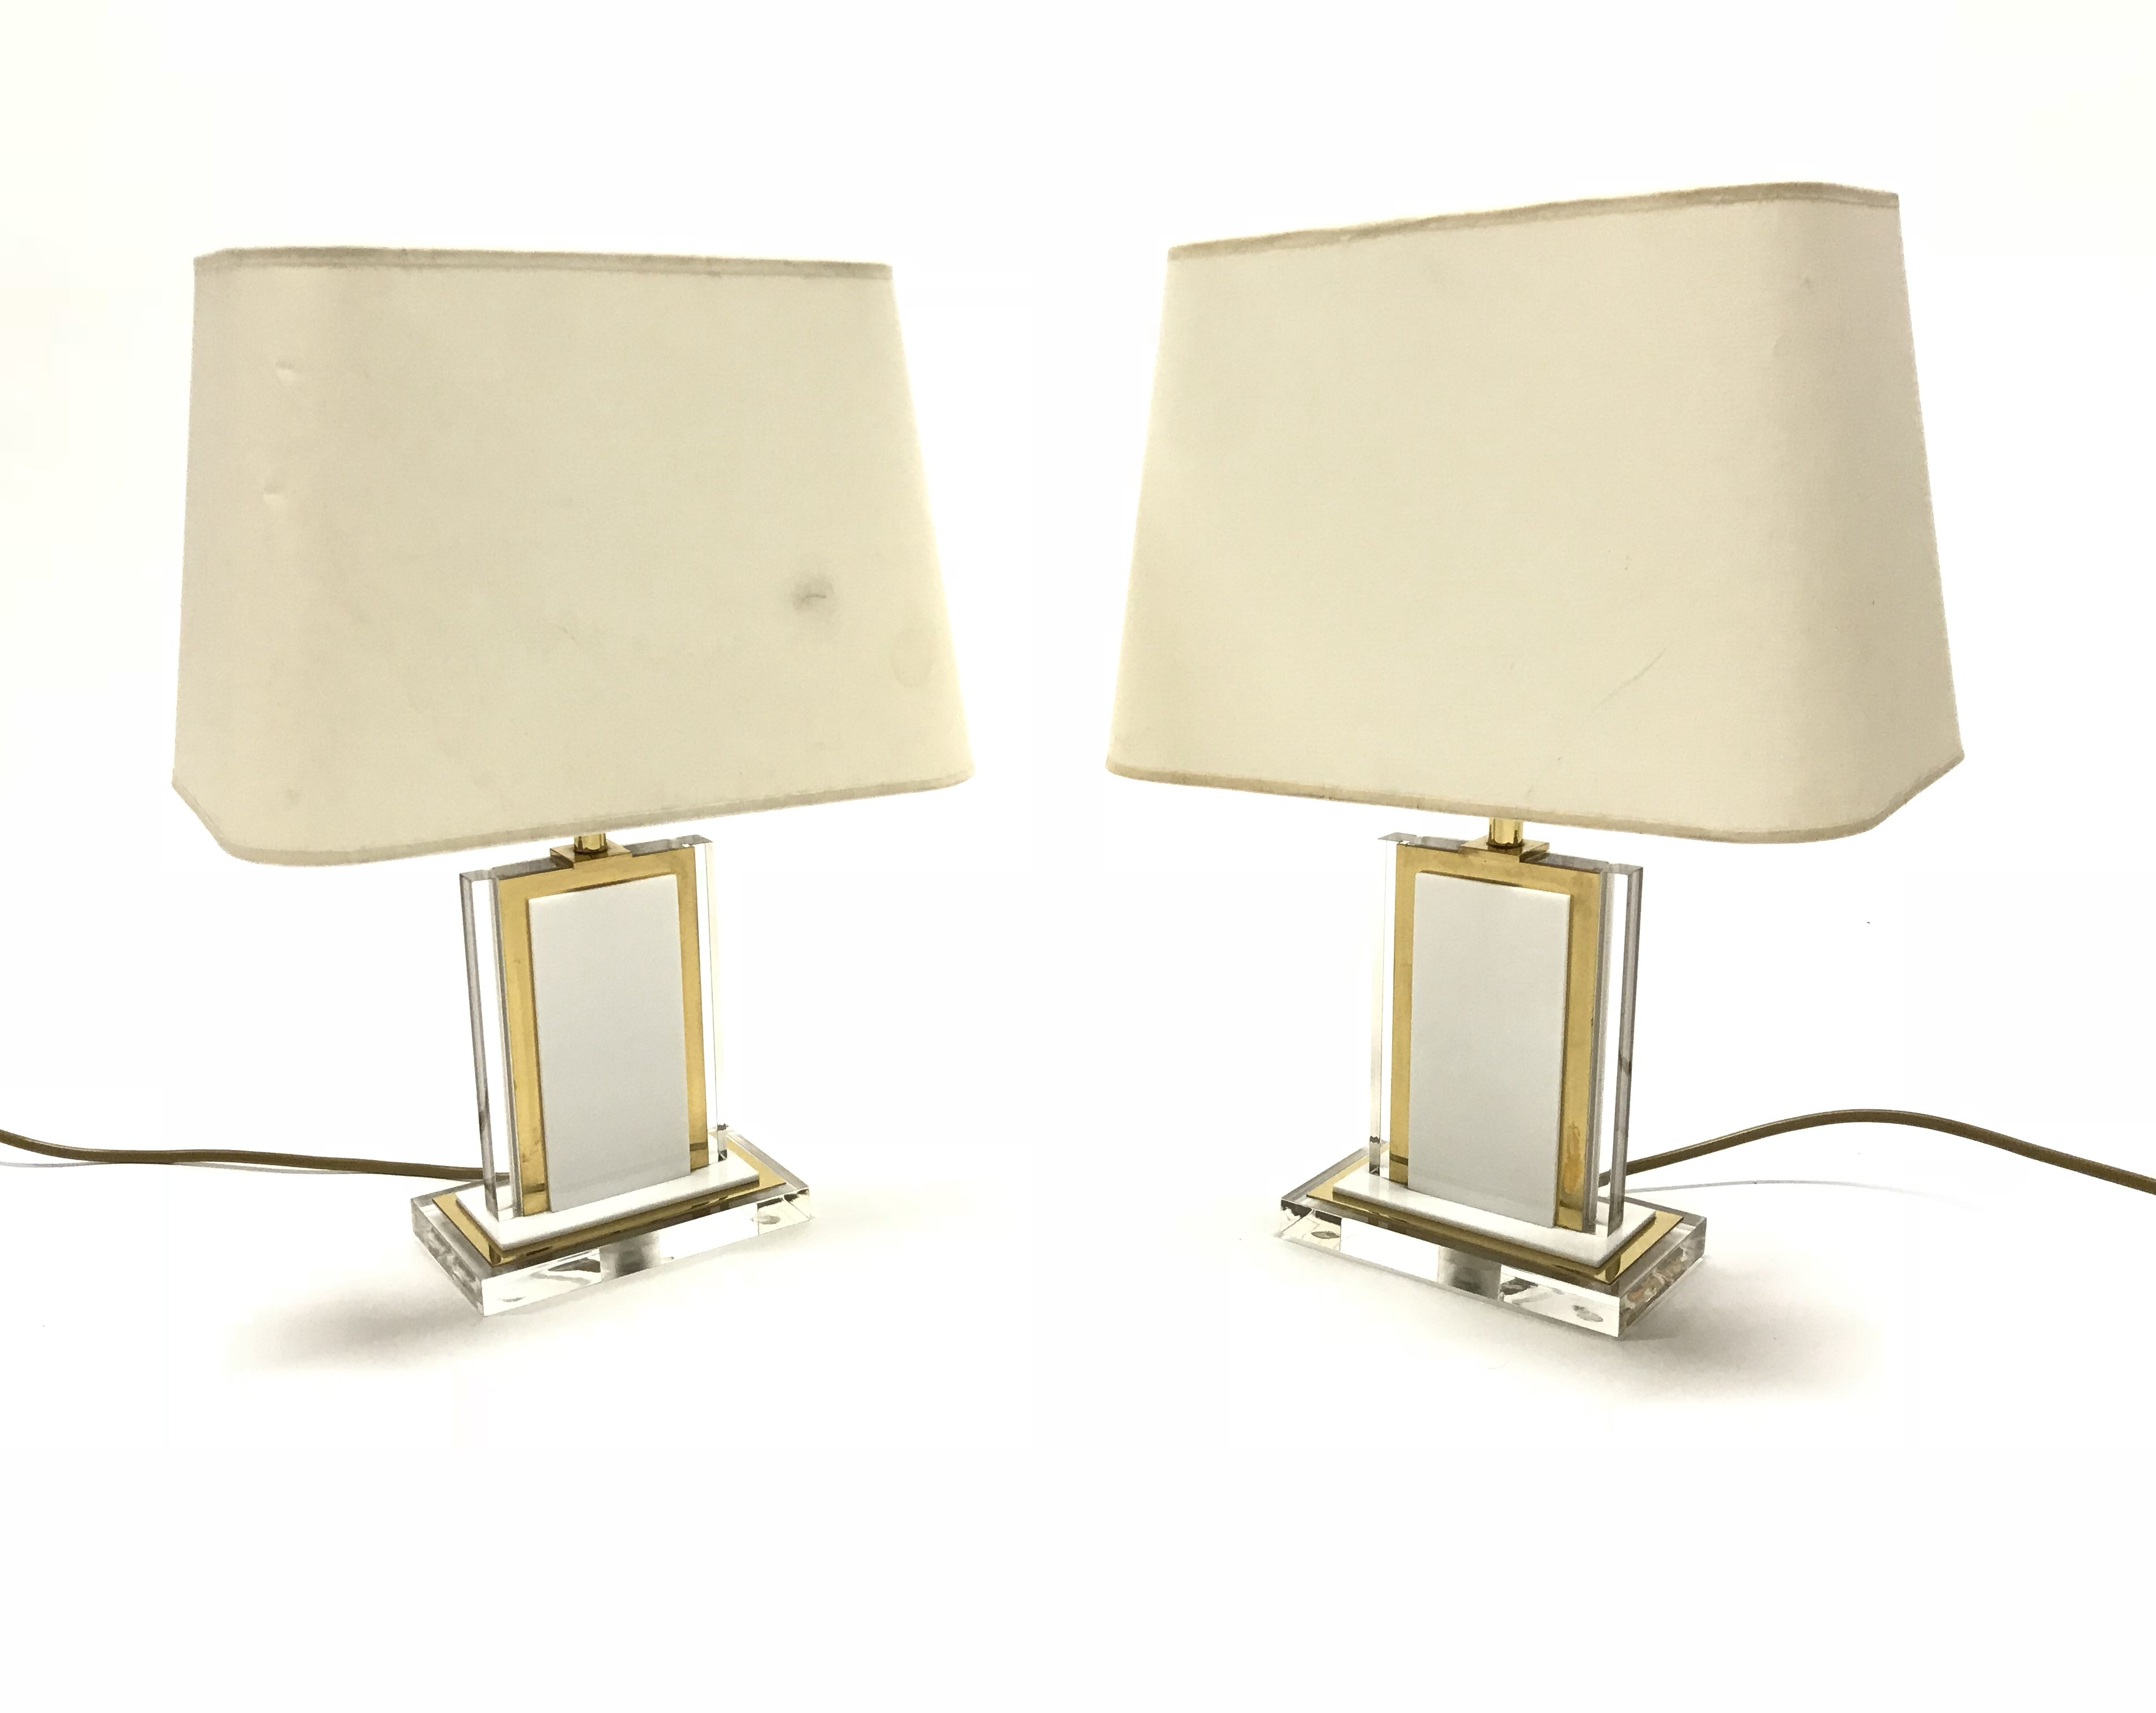 Pair Of Vintage Brass Lucite Table Lamps 1970s